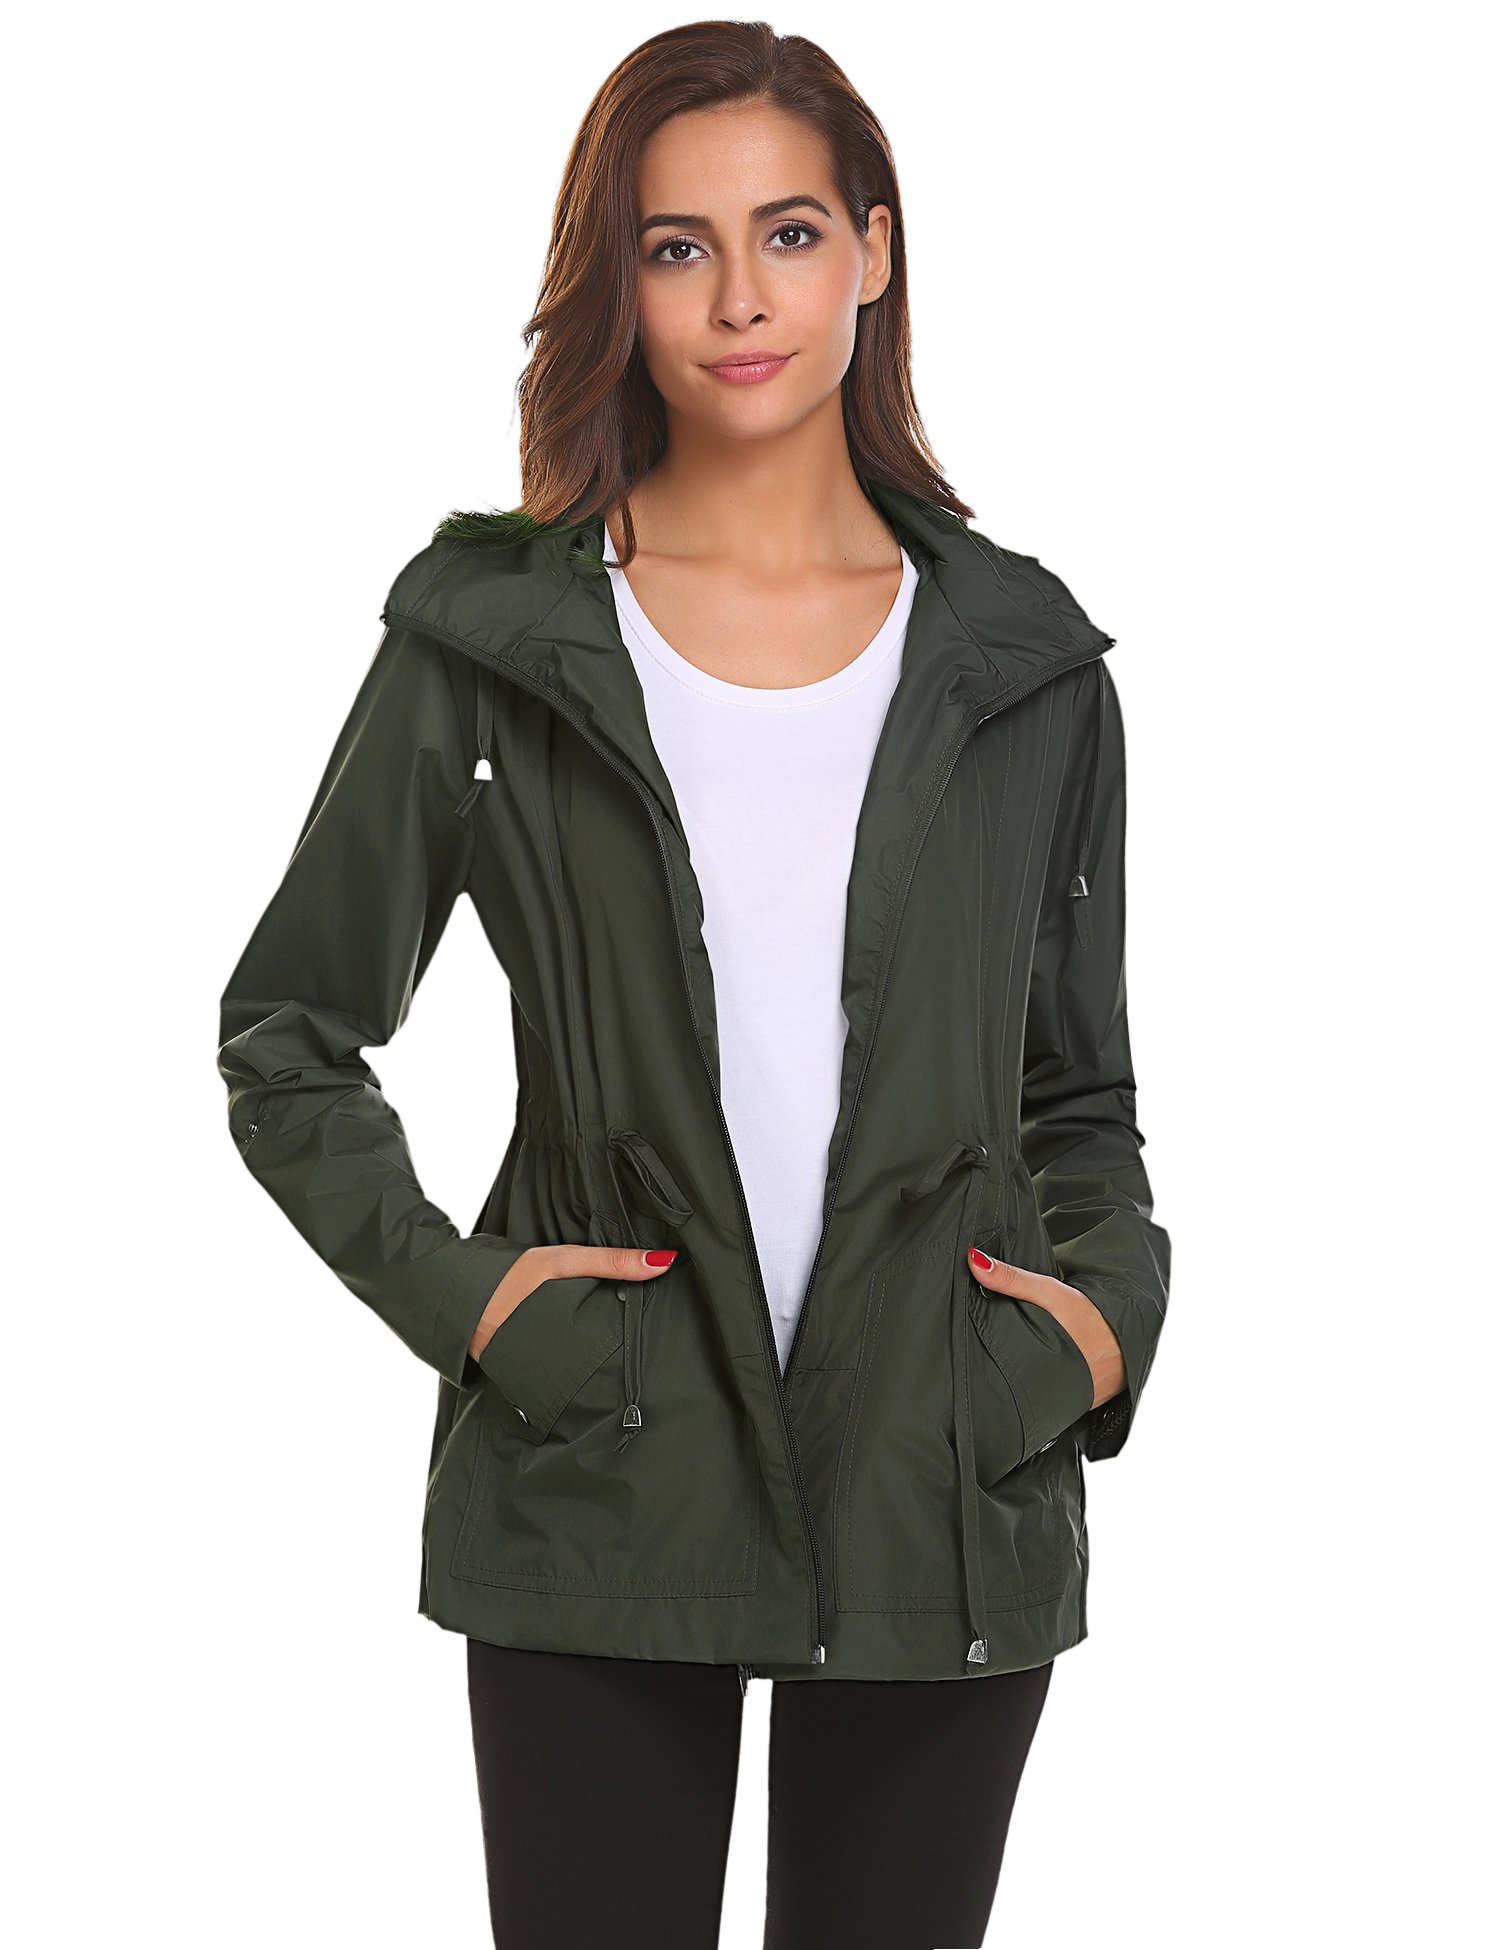 274ccda4f Romanstii Outdoor Active Rain Jacket Women Waterproof Lightweight Hood  Raincoat - Ultimate Fashion Trends for Girls | Fashion's Girl